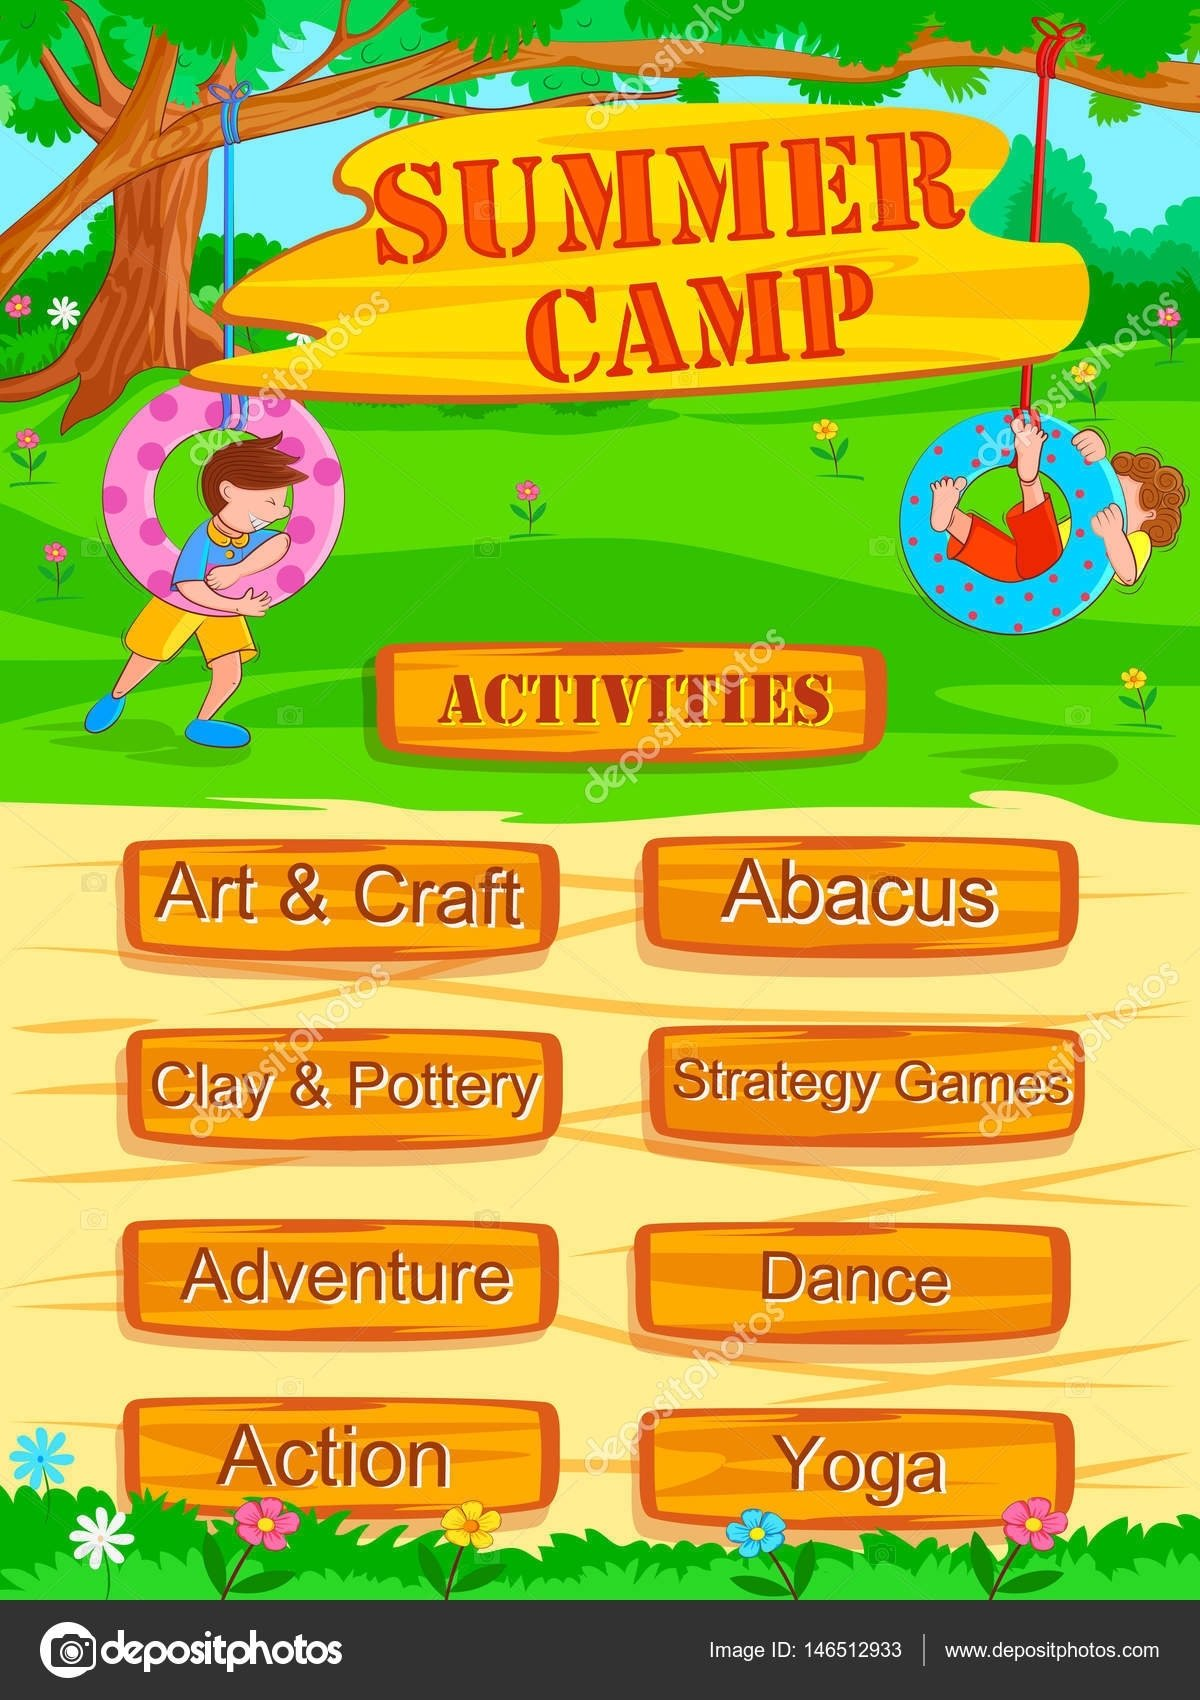 10 Cute Summer Camp Ideas For Kids banner poster design template for kids summer camp activities